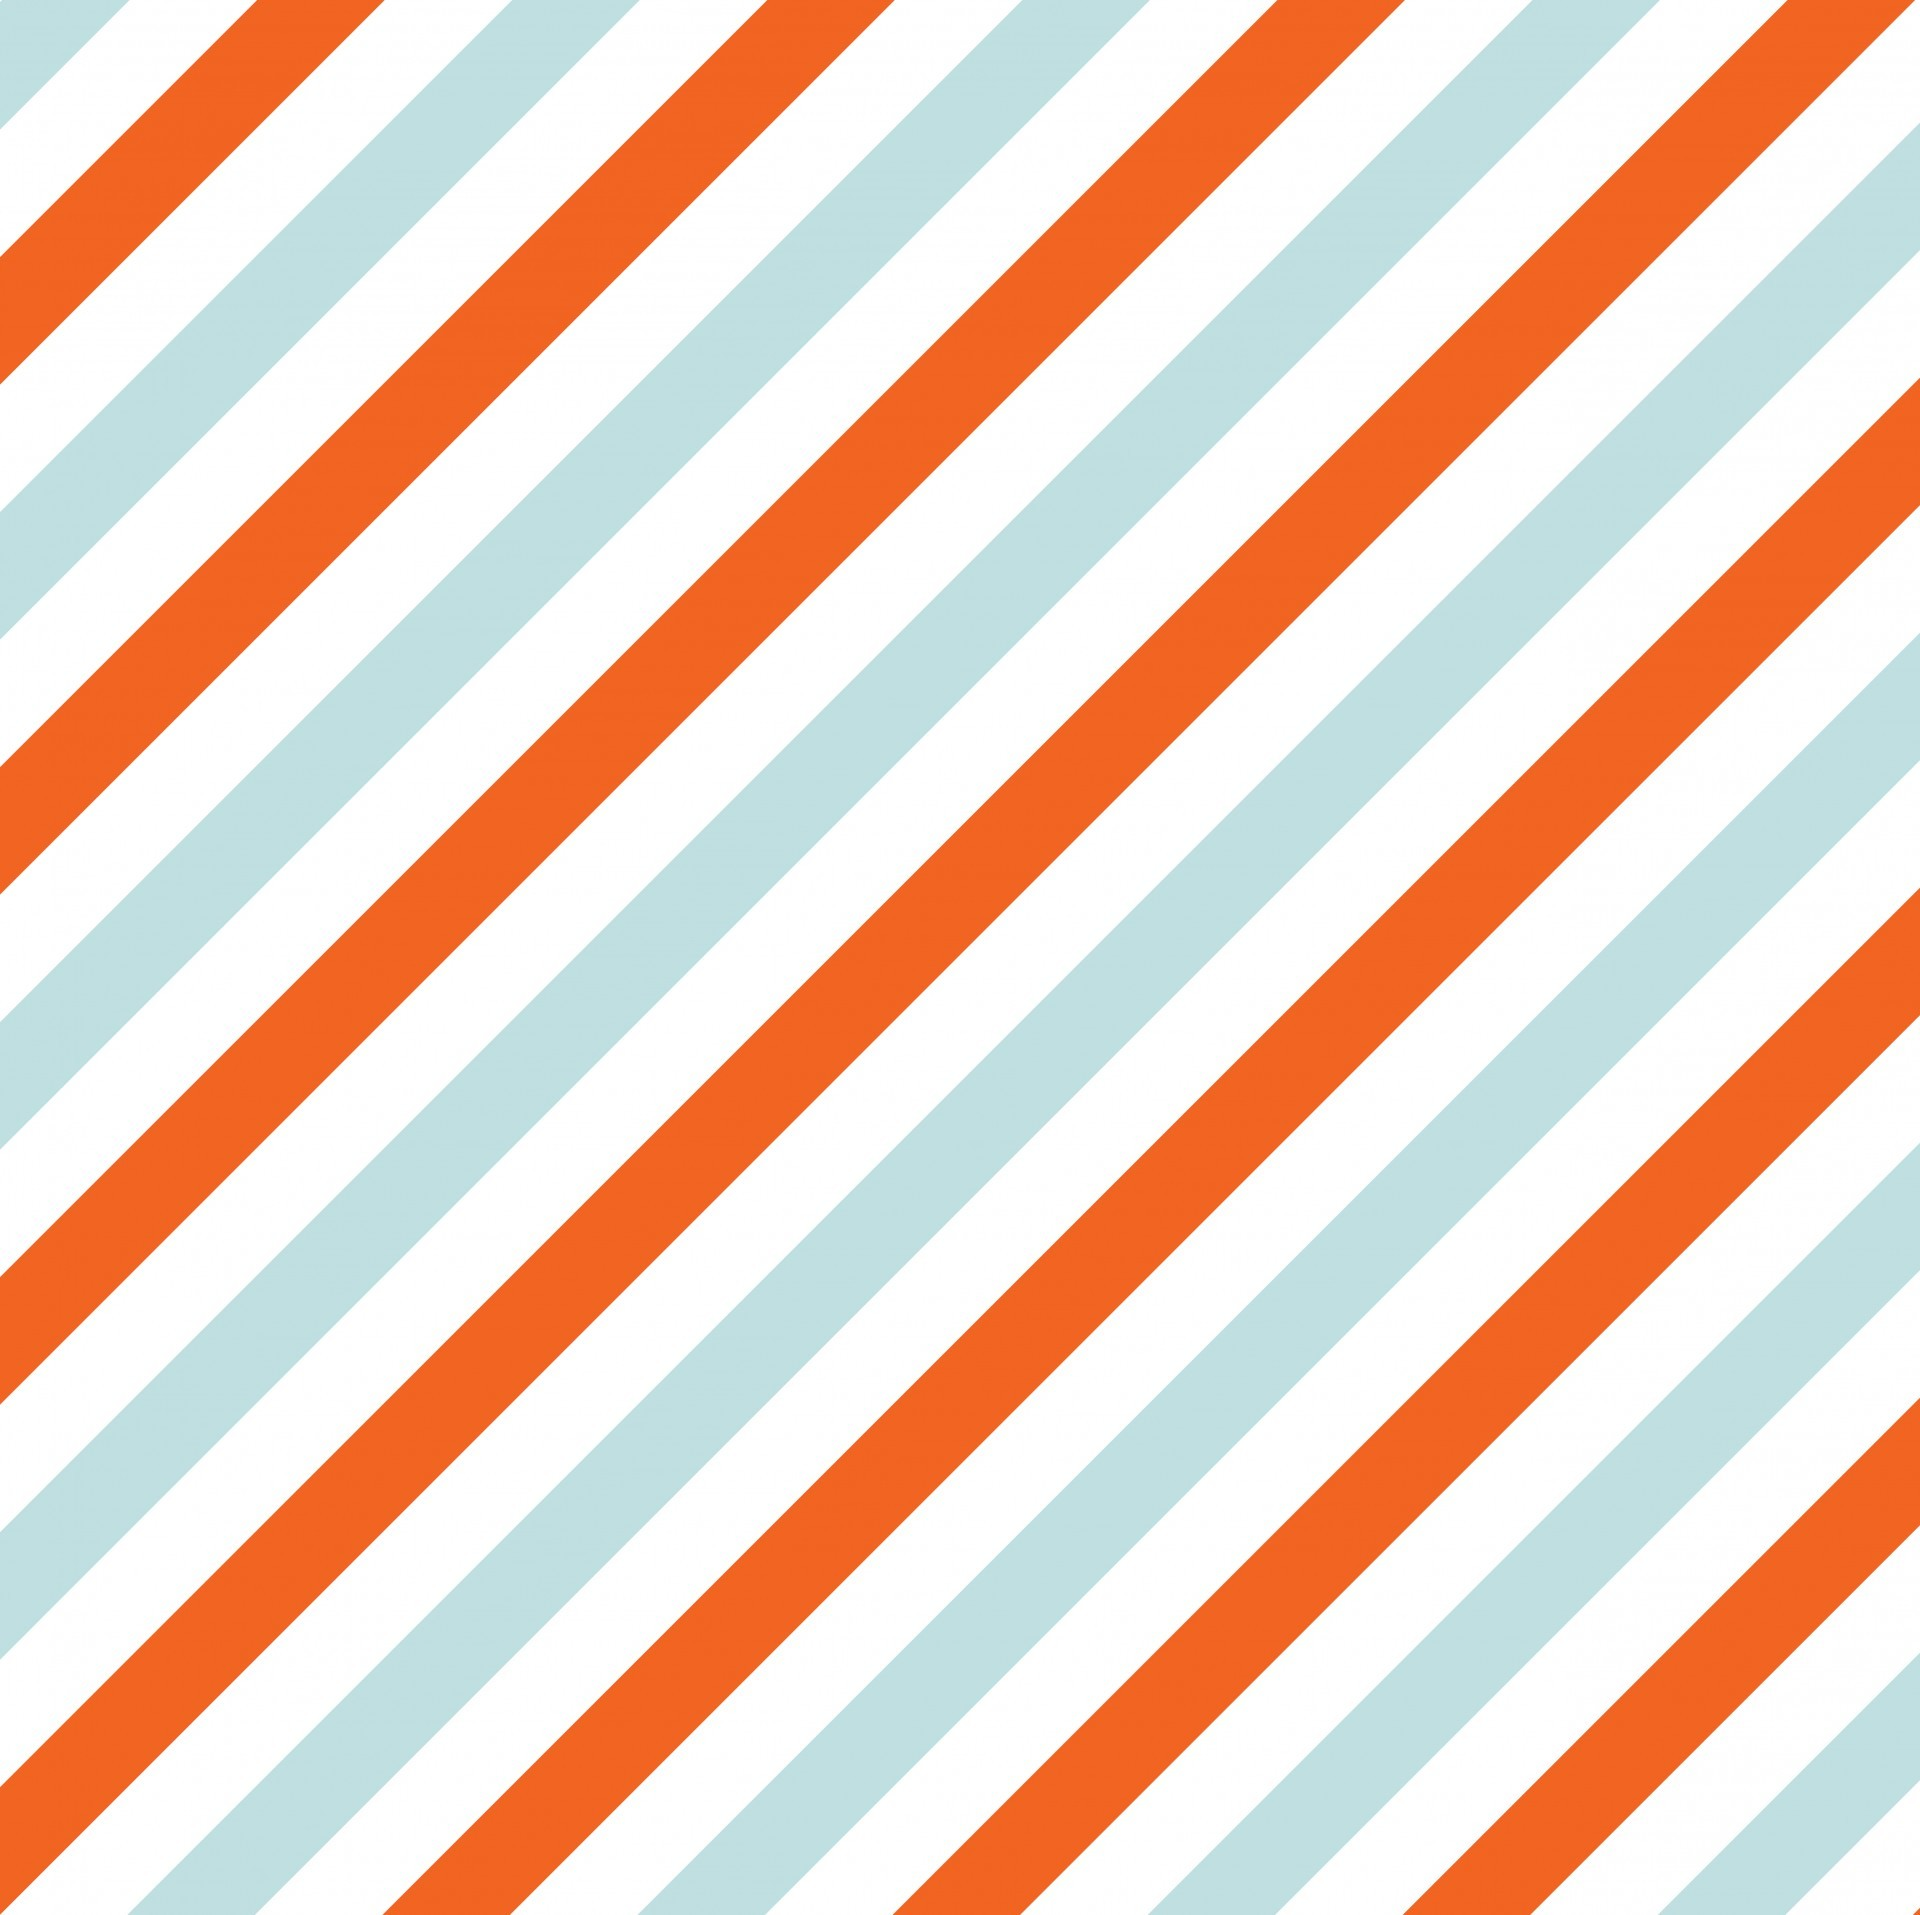 Colorful Striped Wallpaper (61+ Images